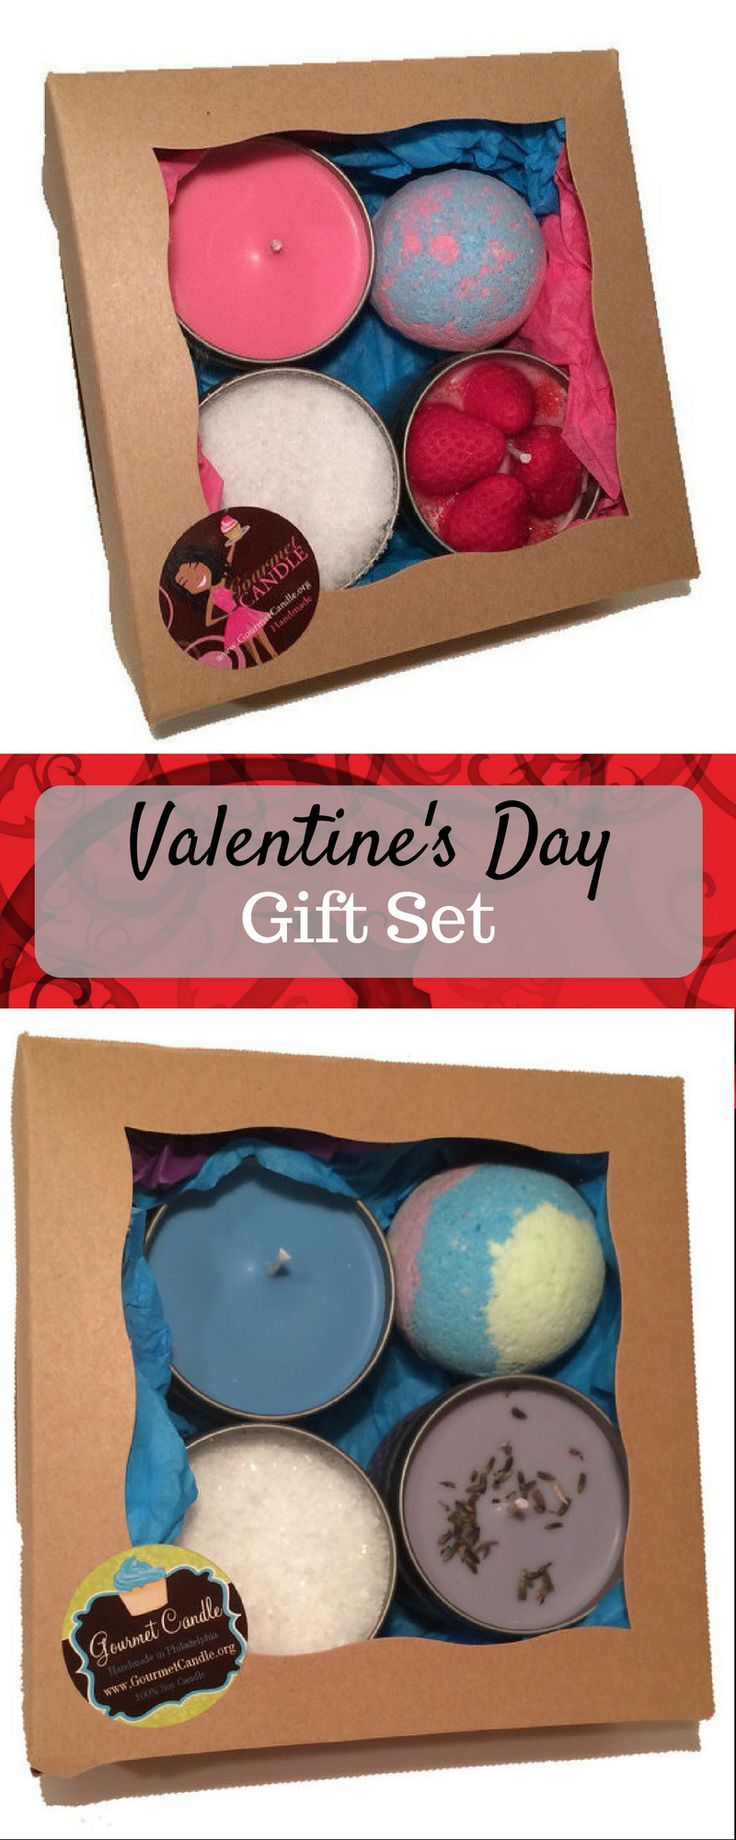 Valentine's Day gift sets - Valentines day gift for her. Great thoughtful gift set for a mini spa or bath set for her or him. Great gift for $25   #valentinesday #holiday #gifts #afflink